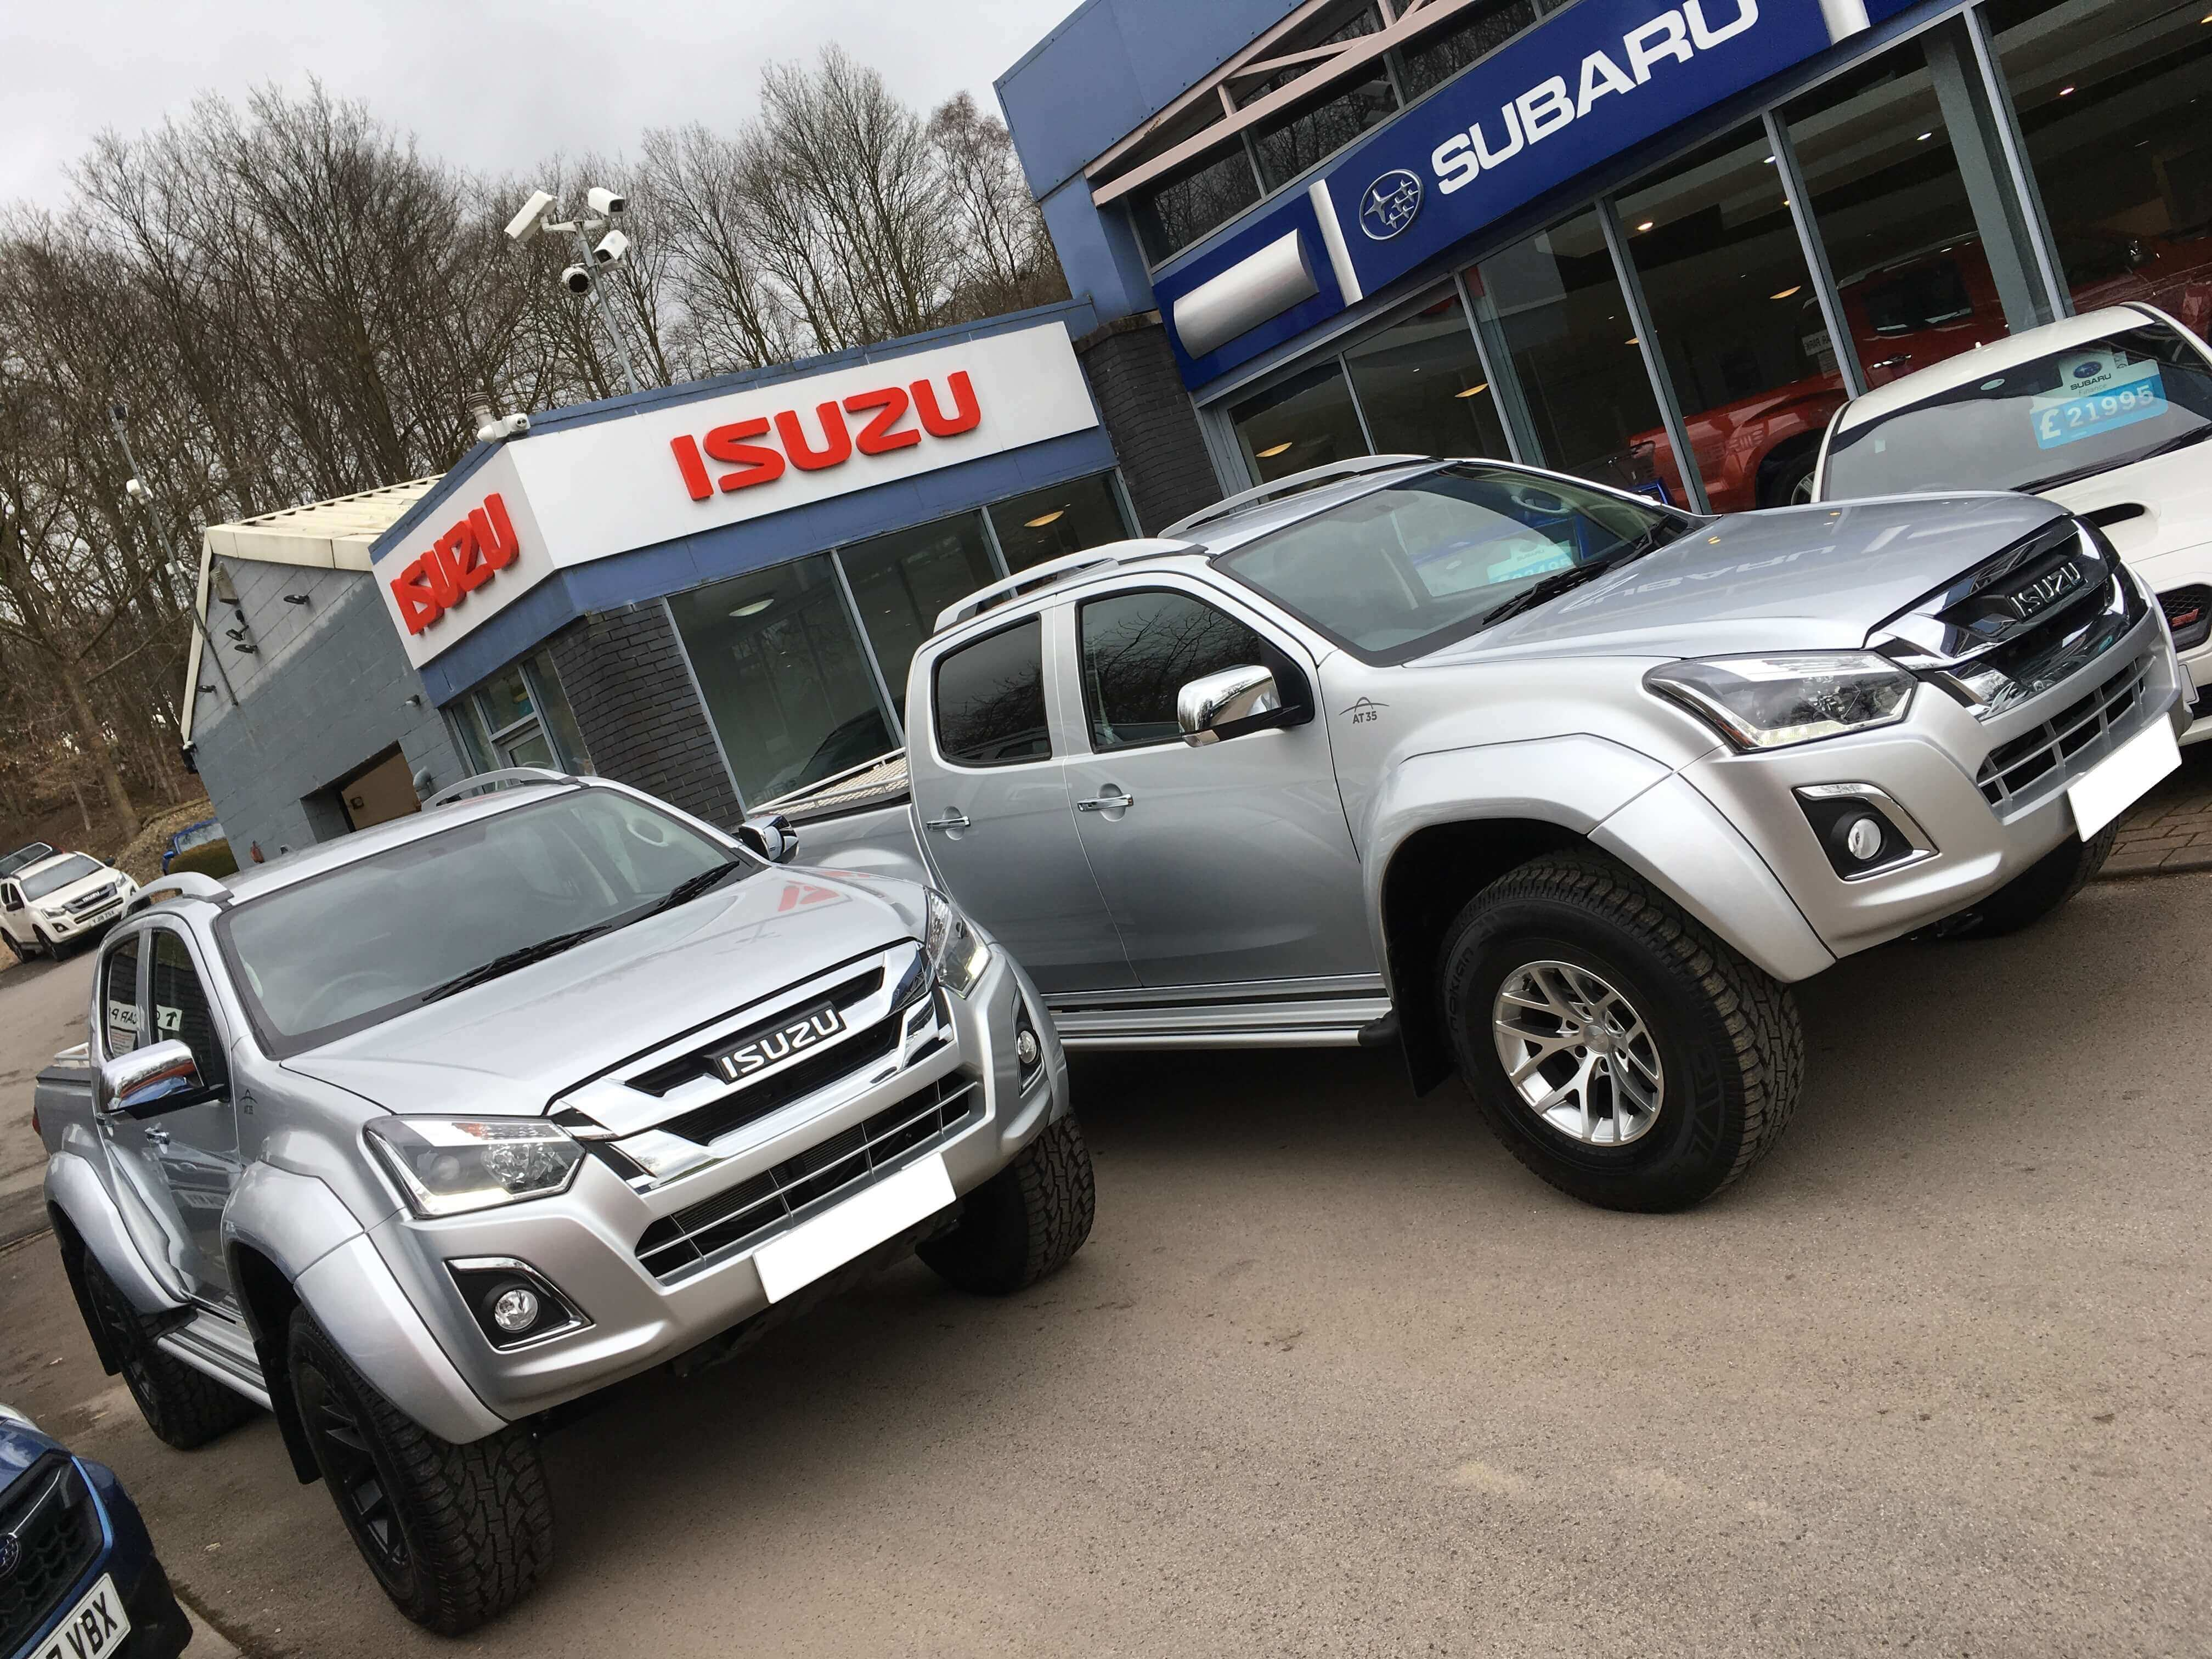 The all-new Isuzu D-Max AT35 is a pick-up truck engineered